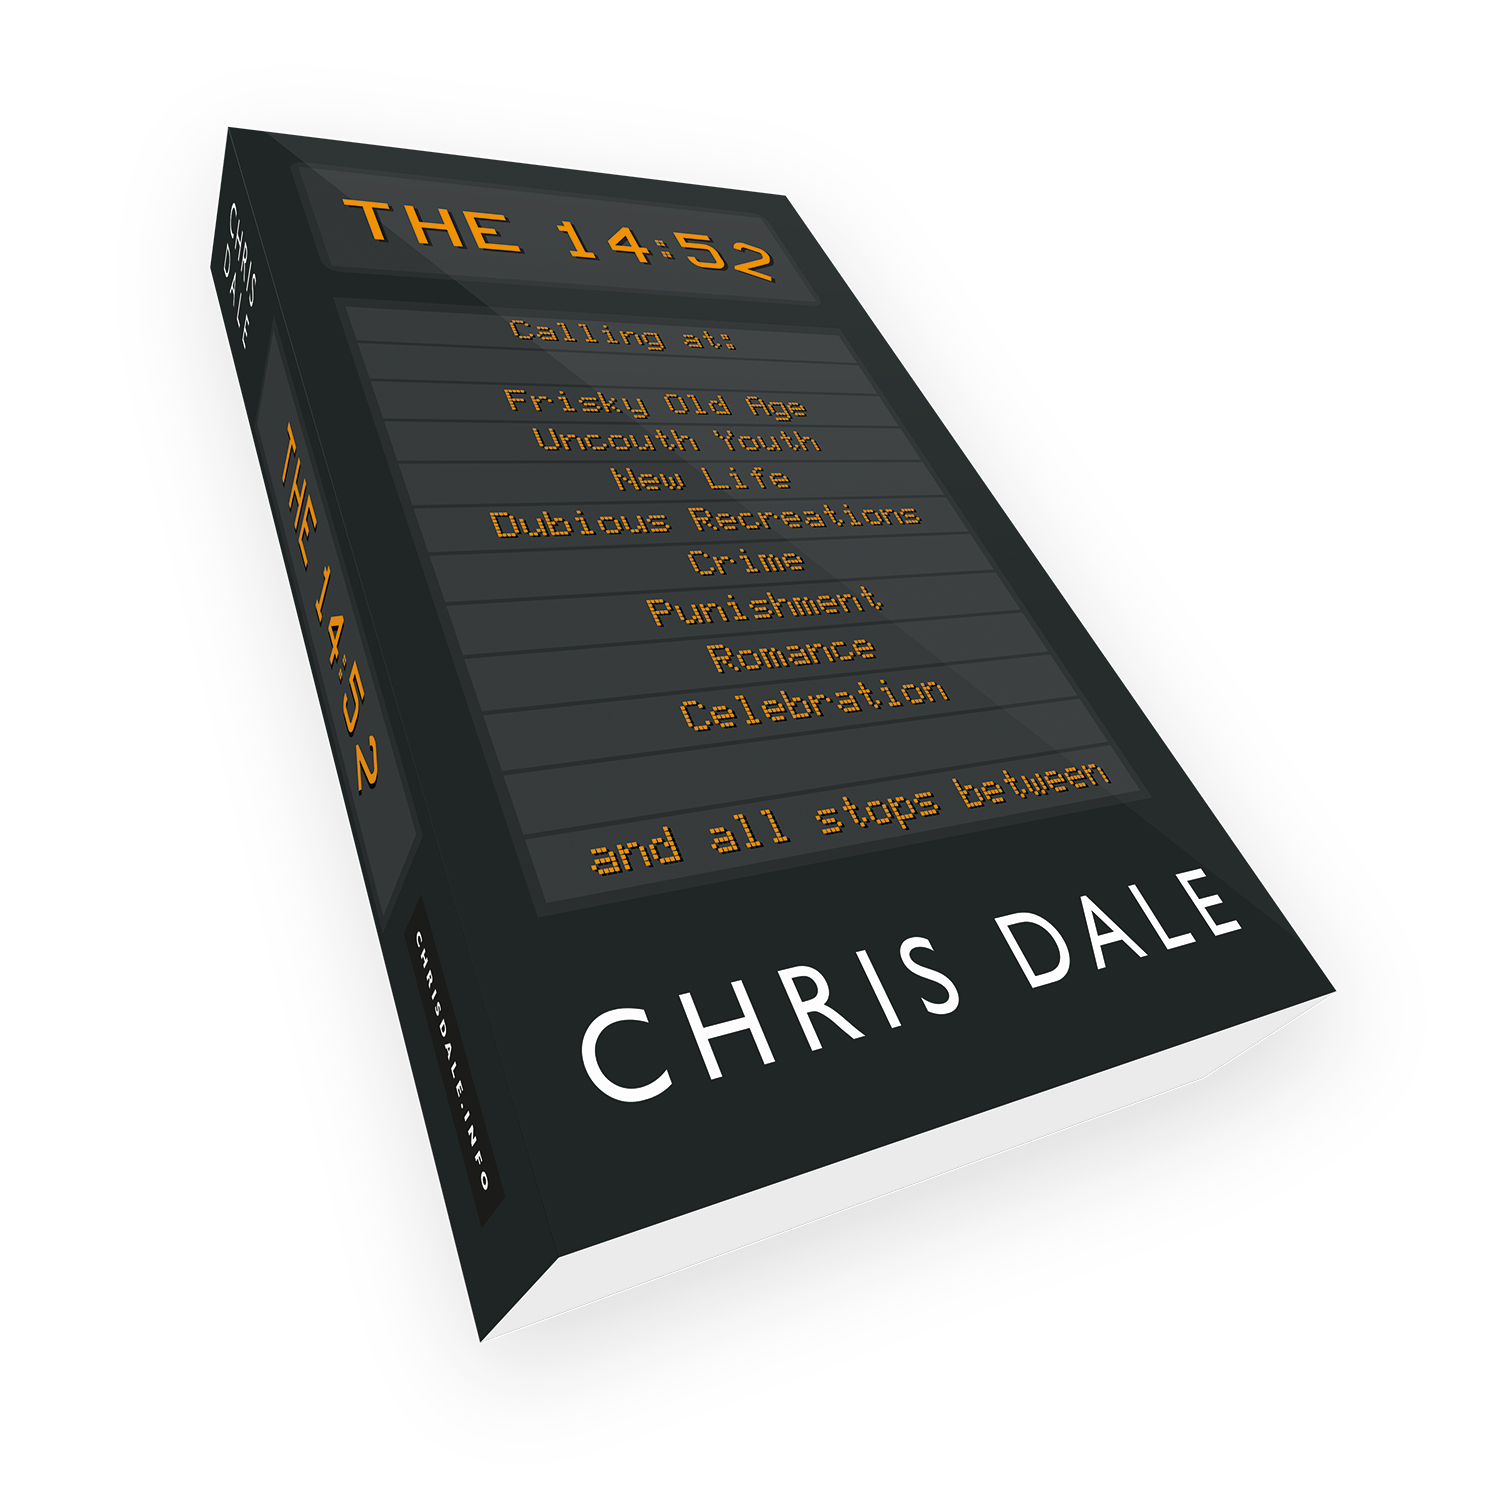 'The 14:52' is a bespoke cover design for dramedy novel, by the author Chris Dale.. The book cover was designed by Mark Thomas, of coverness.com. To find out more about my book design services, please visit www.coverness.com.